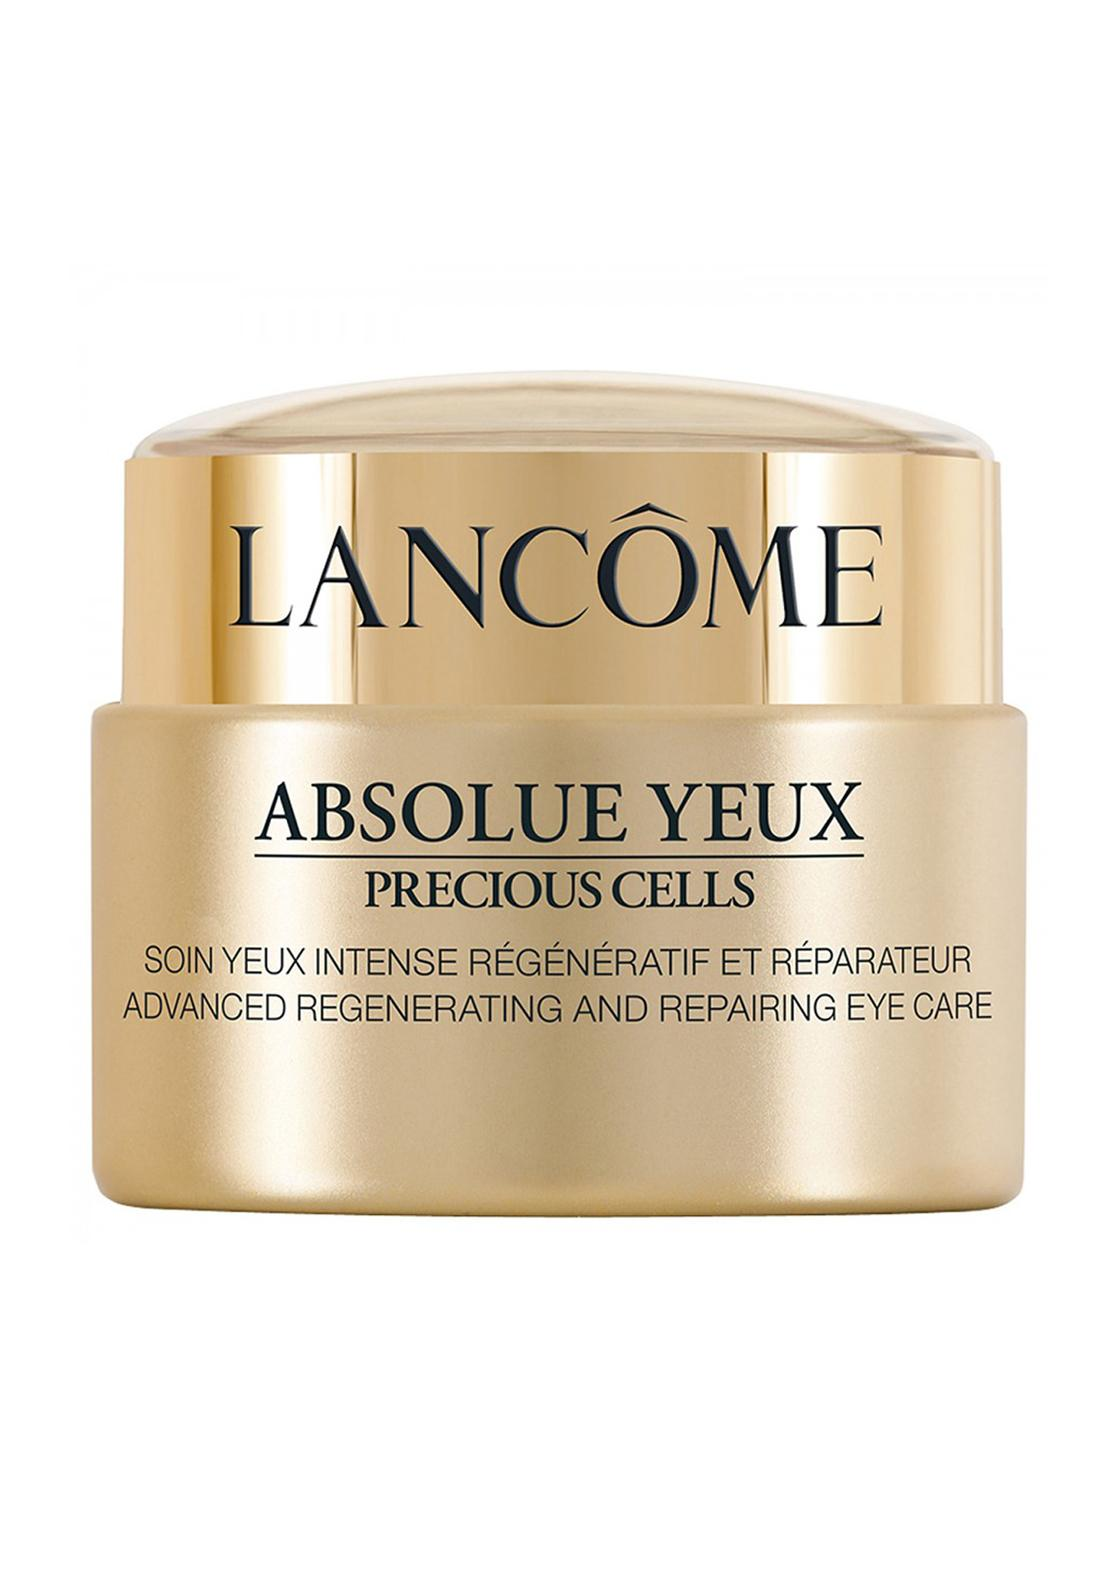 Lancome Absolue Yeux Precious Cells Eye Cream 20ml Lancome